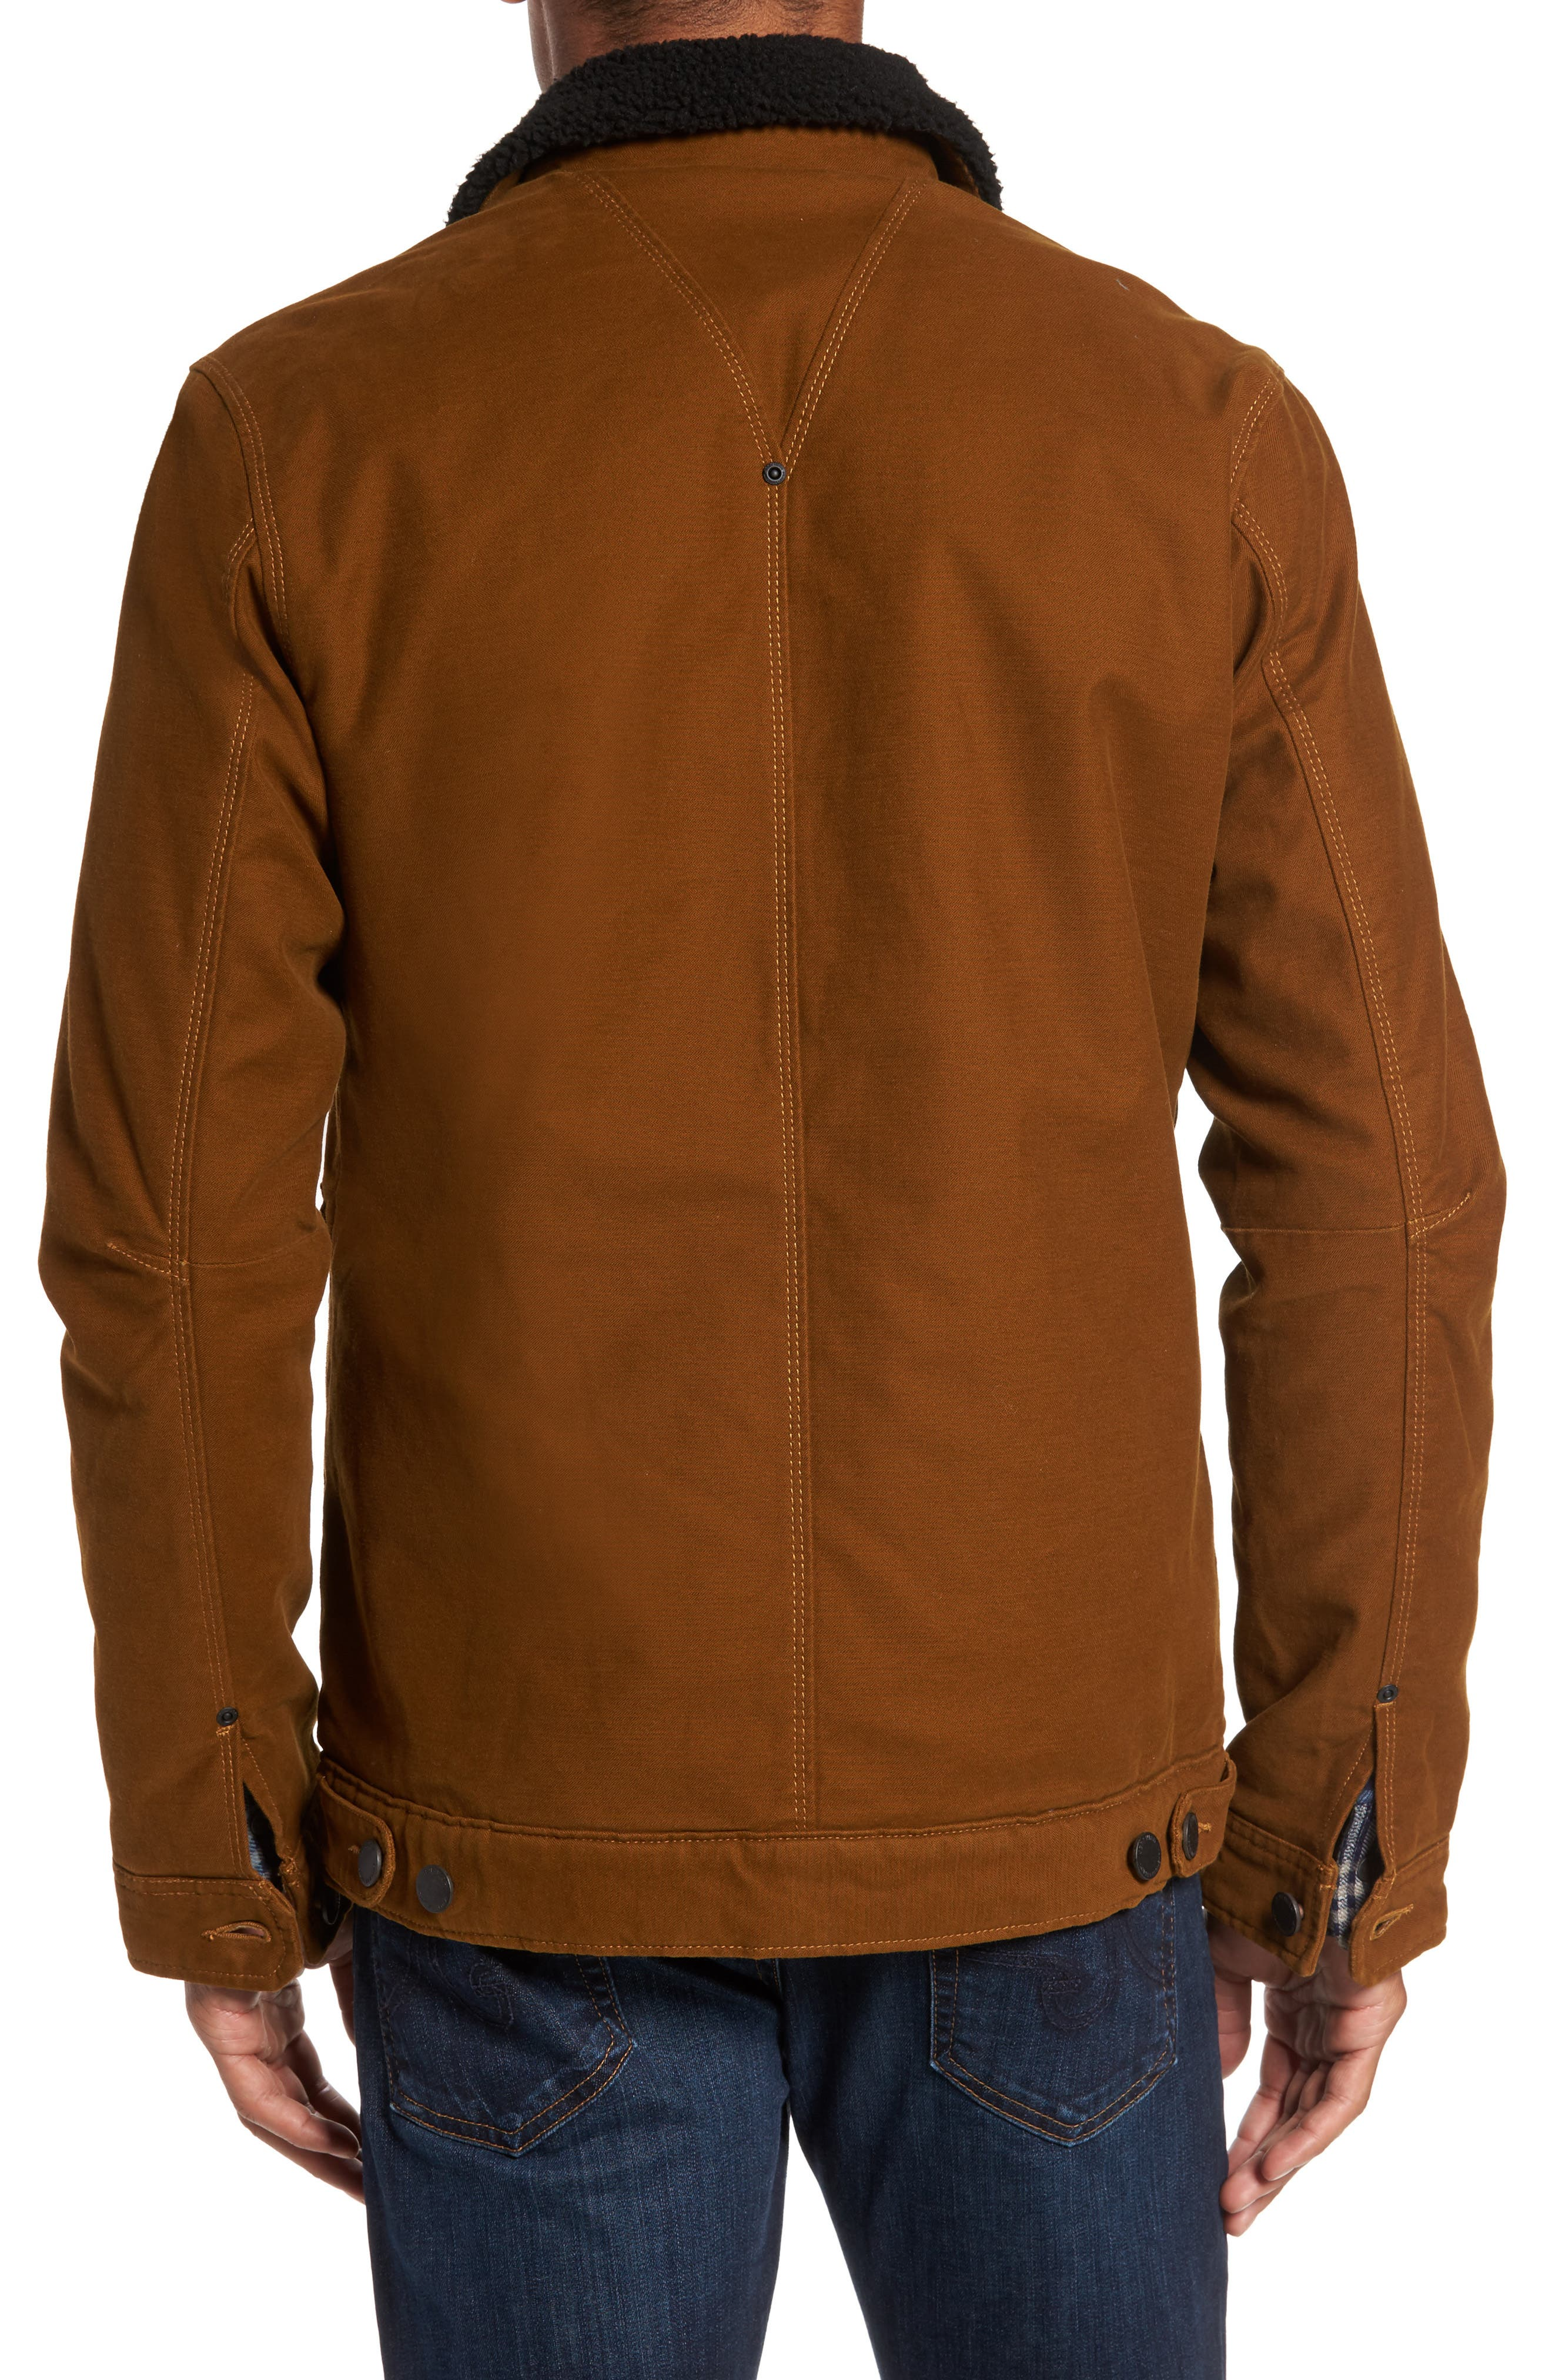 Terra Broken Twill Jacket with Faux Shearling Trim,                             Alternate thumbnail 2, color,